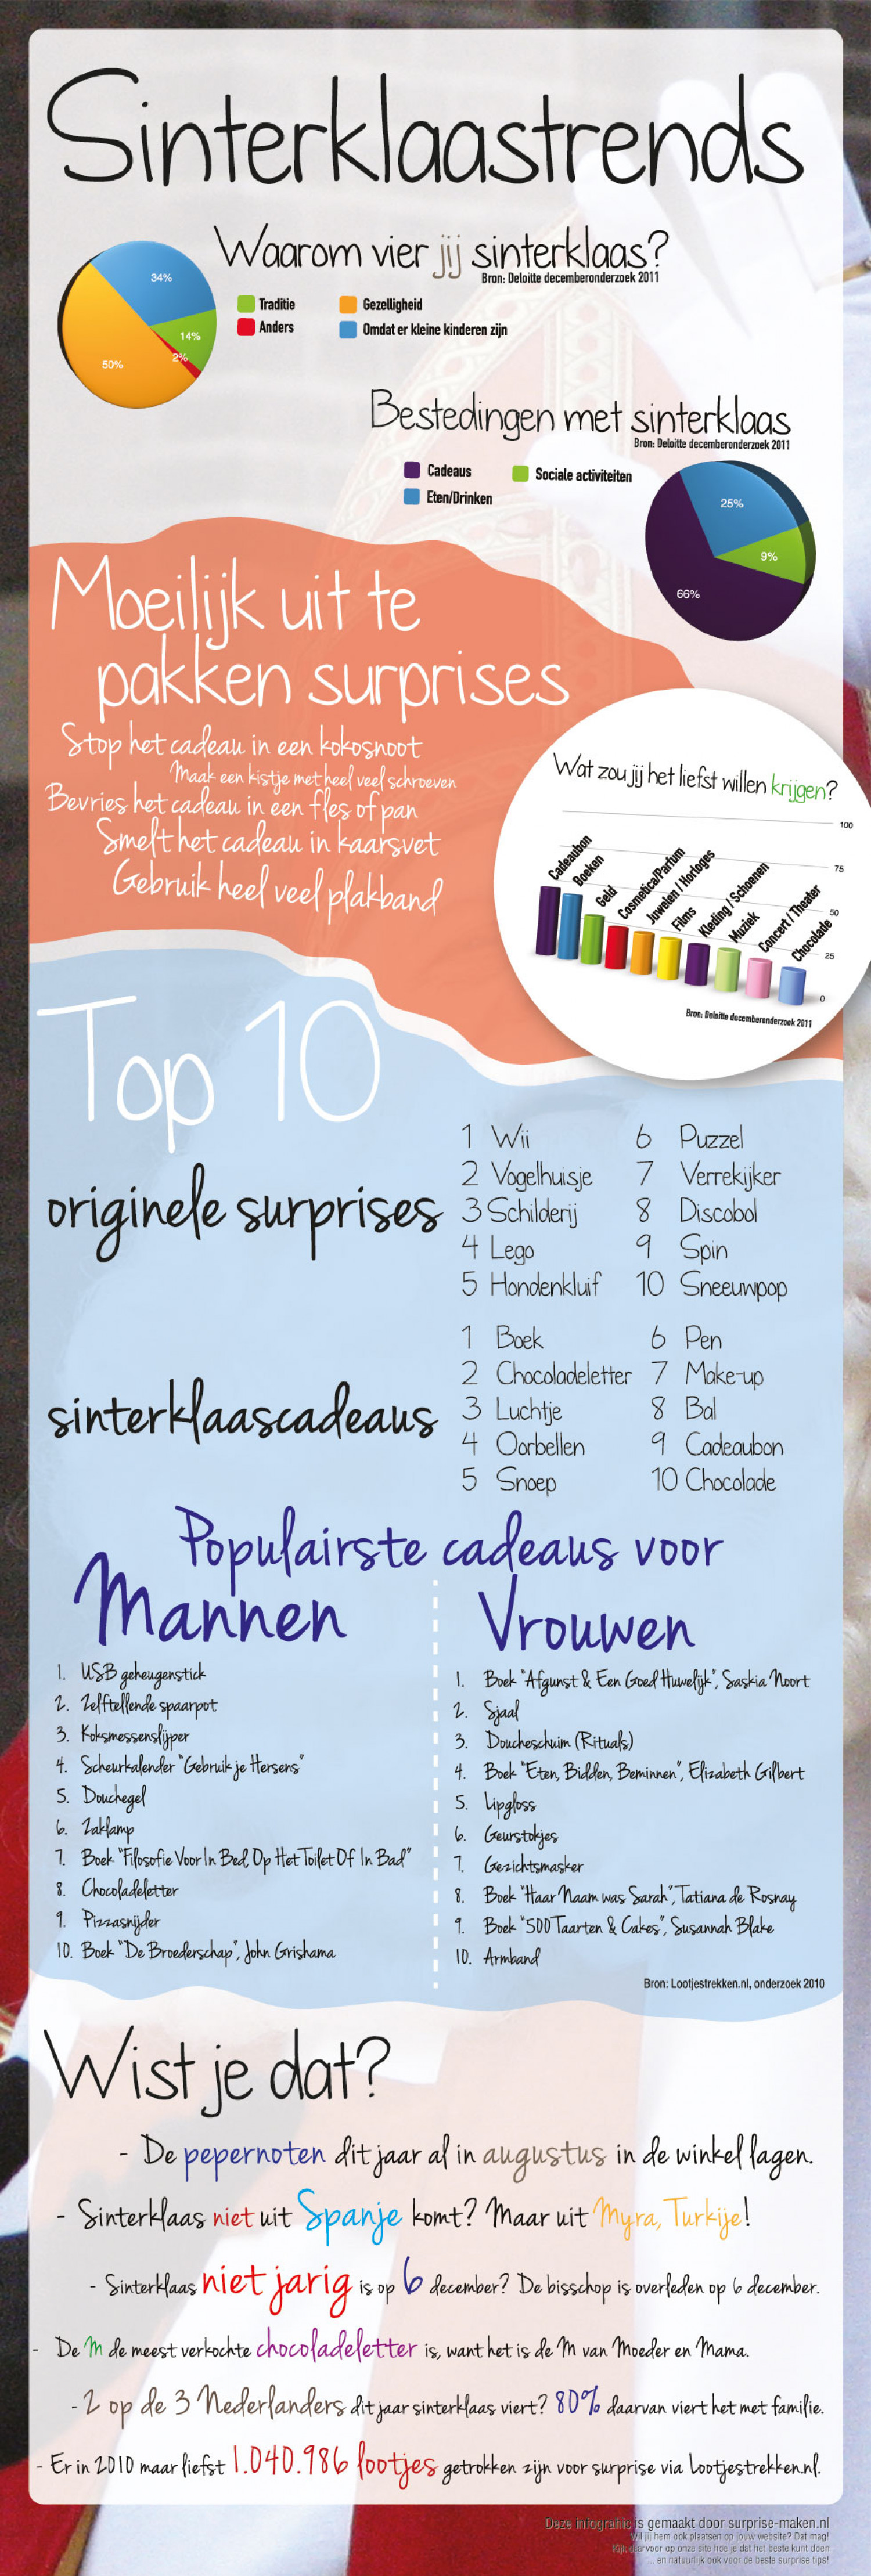 Sinterklaastrends [dutch] - Trends of Saint-Nicholas Infographic